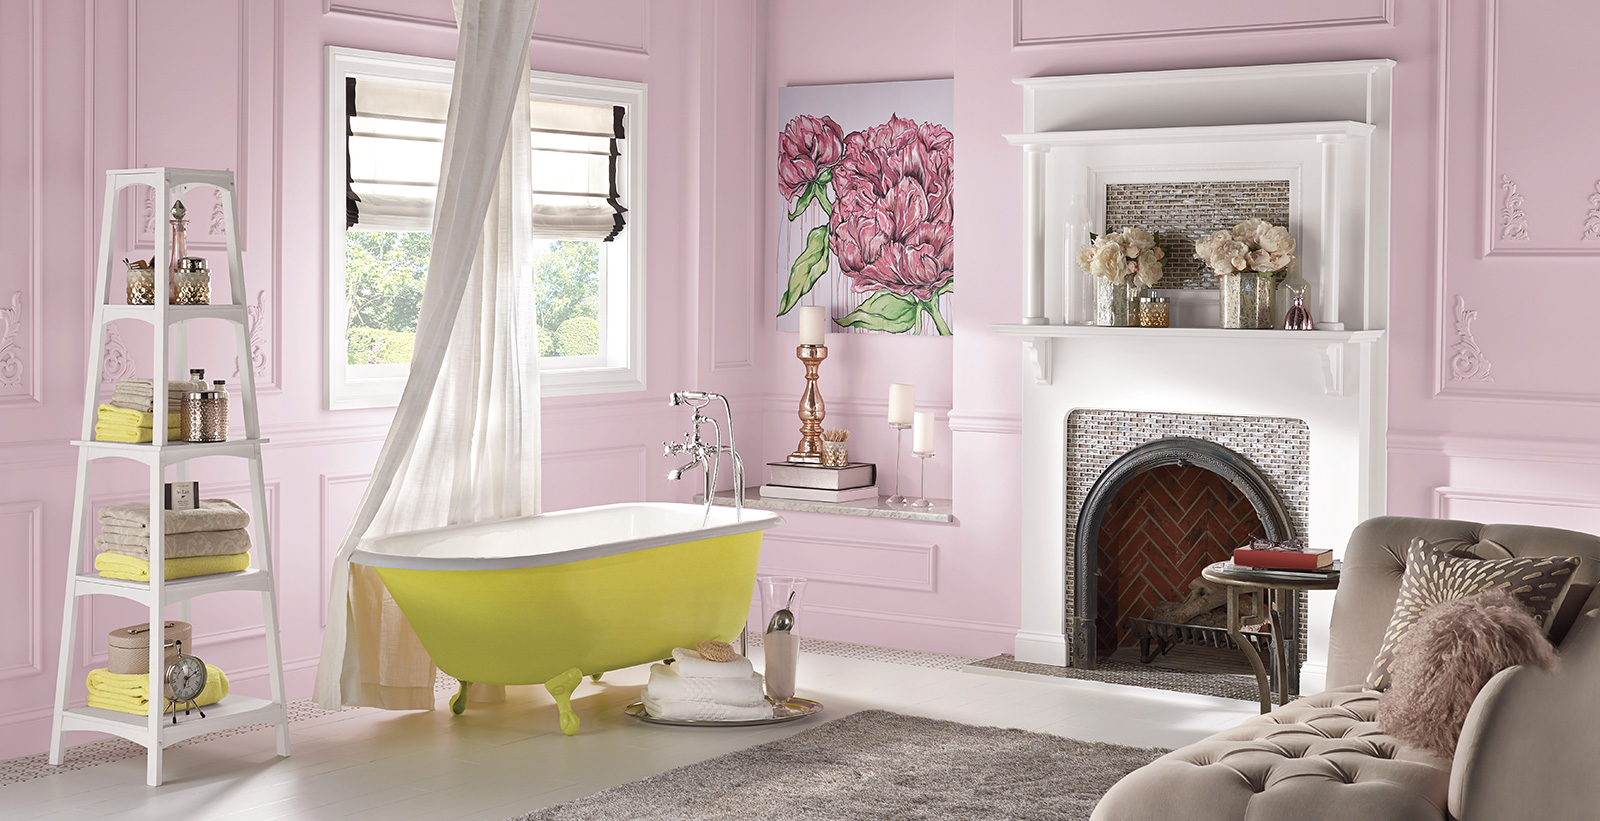 Inviting themed bathroom with pink walls, pink trim, yellow bathtub, and white fireplace.